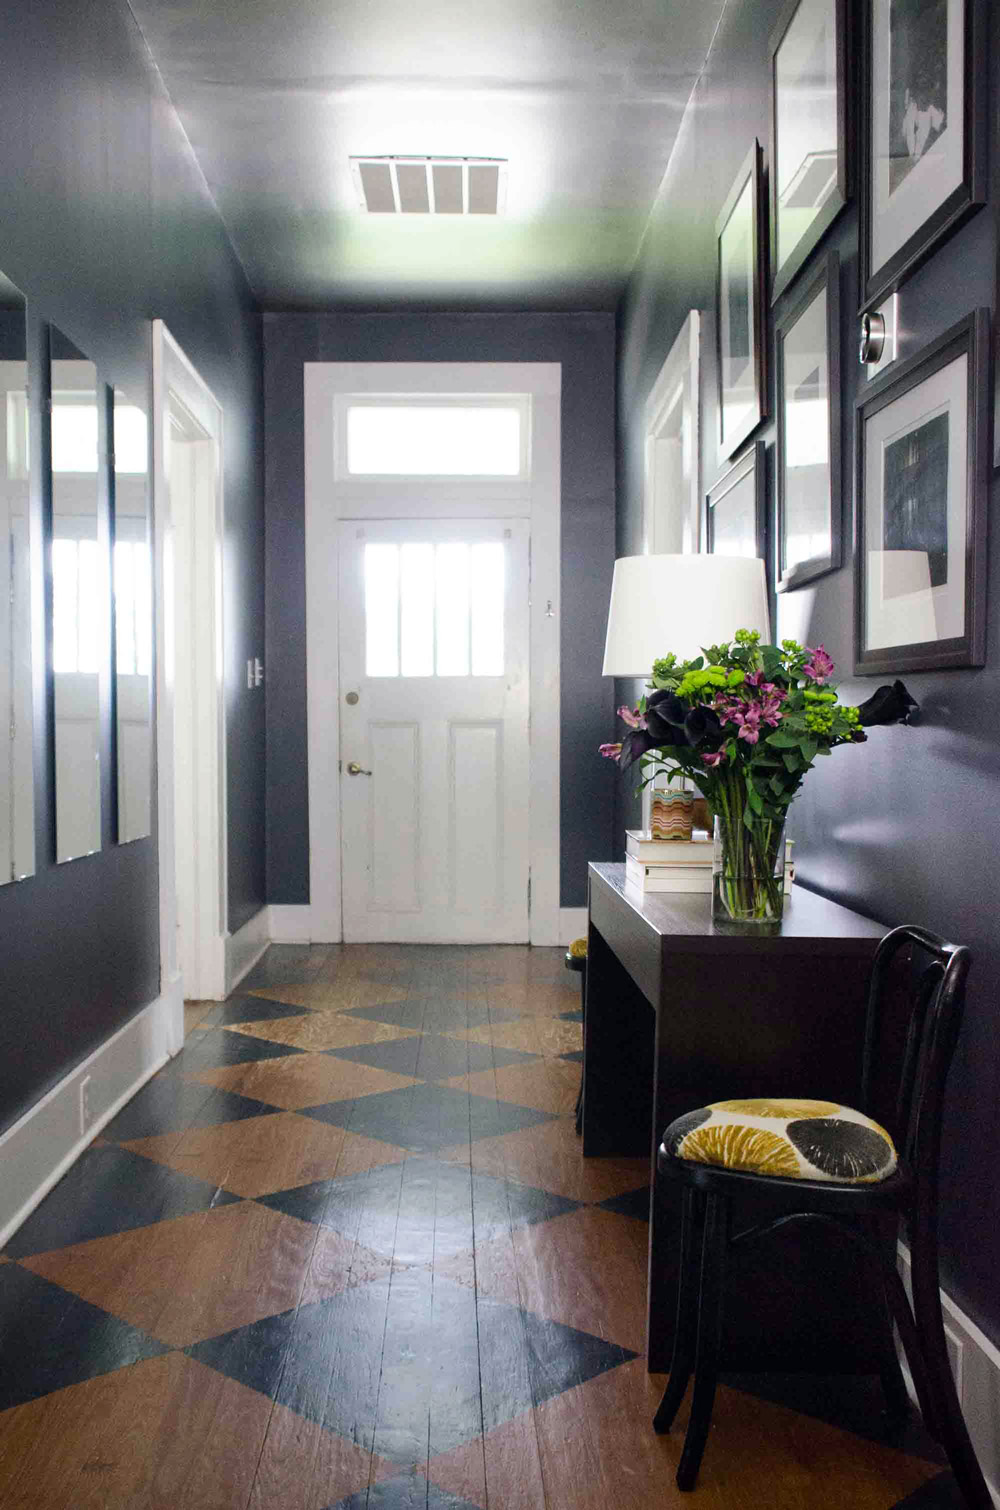 Before & After: A Cozy and Sophisticated Bungalow for Dad, on Design*Sponge